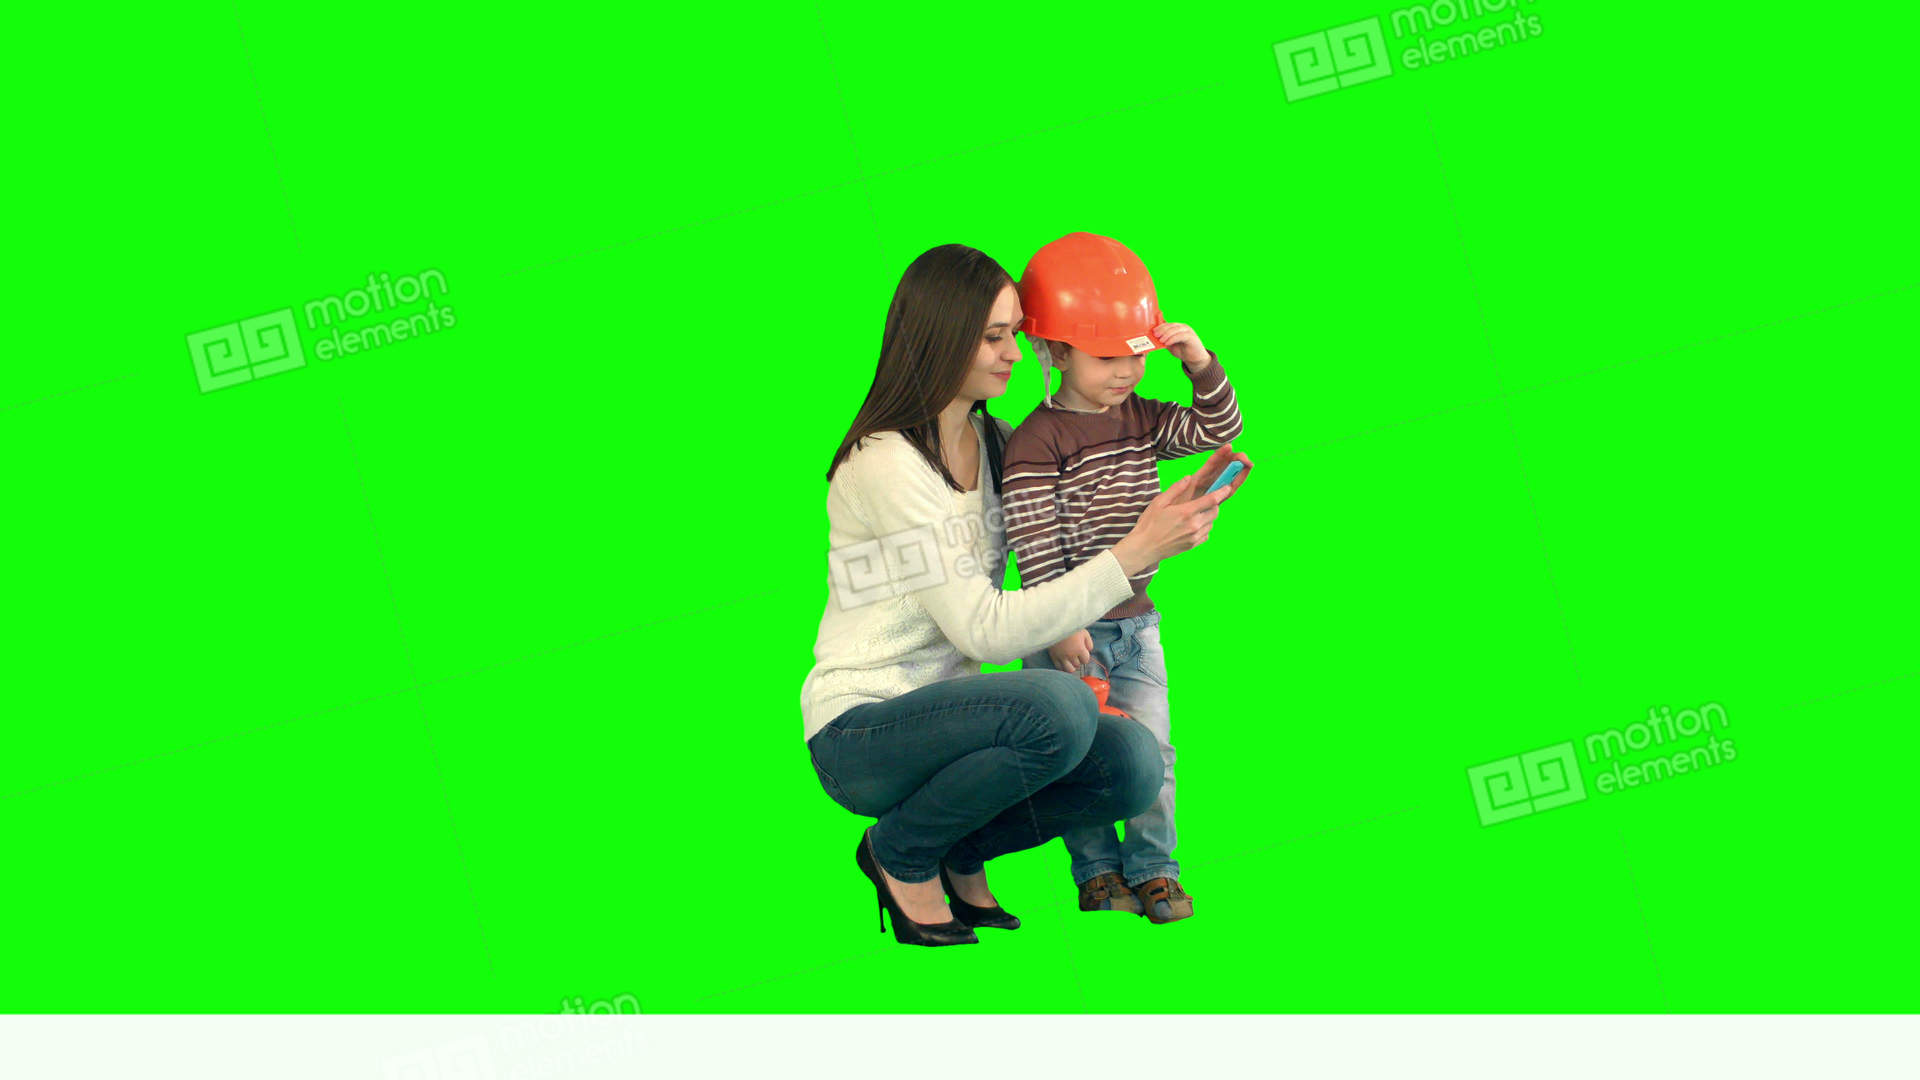 Green screen dating